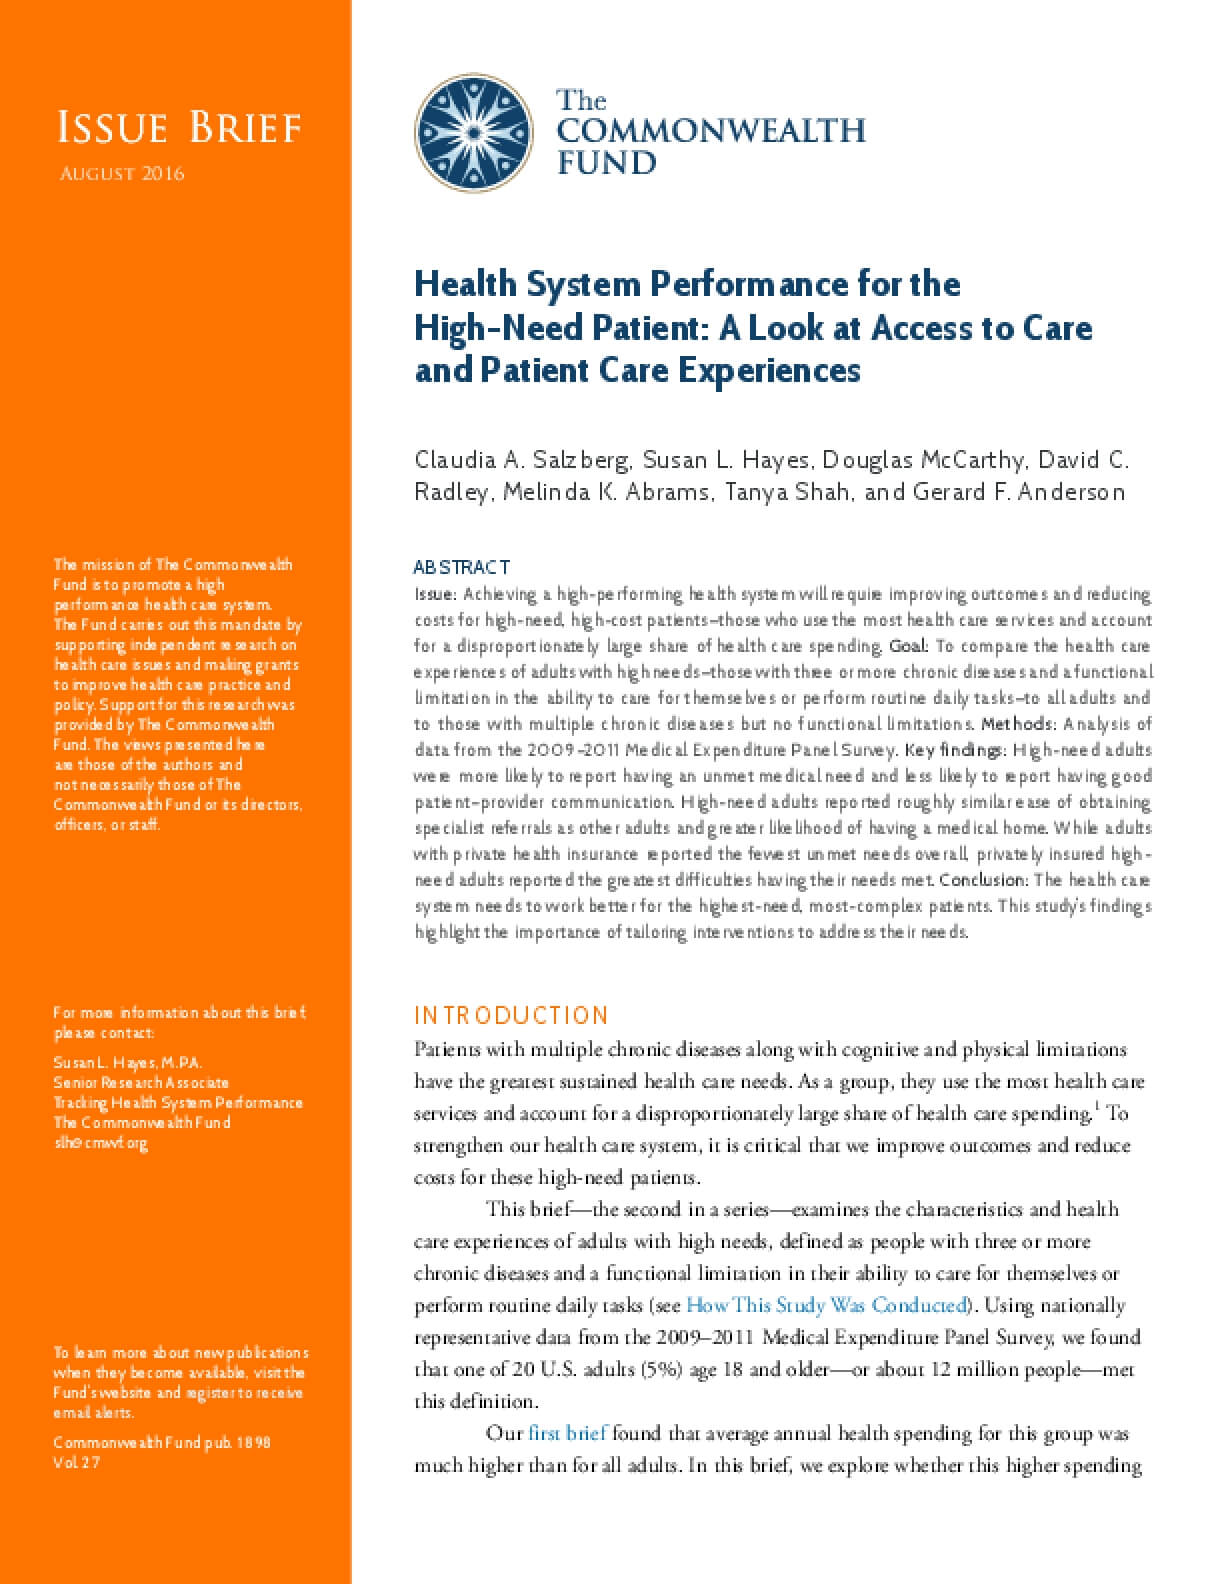 Health System Performance for the High-Need Patient: A Look at Access to Care and Patient Care Experiences